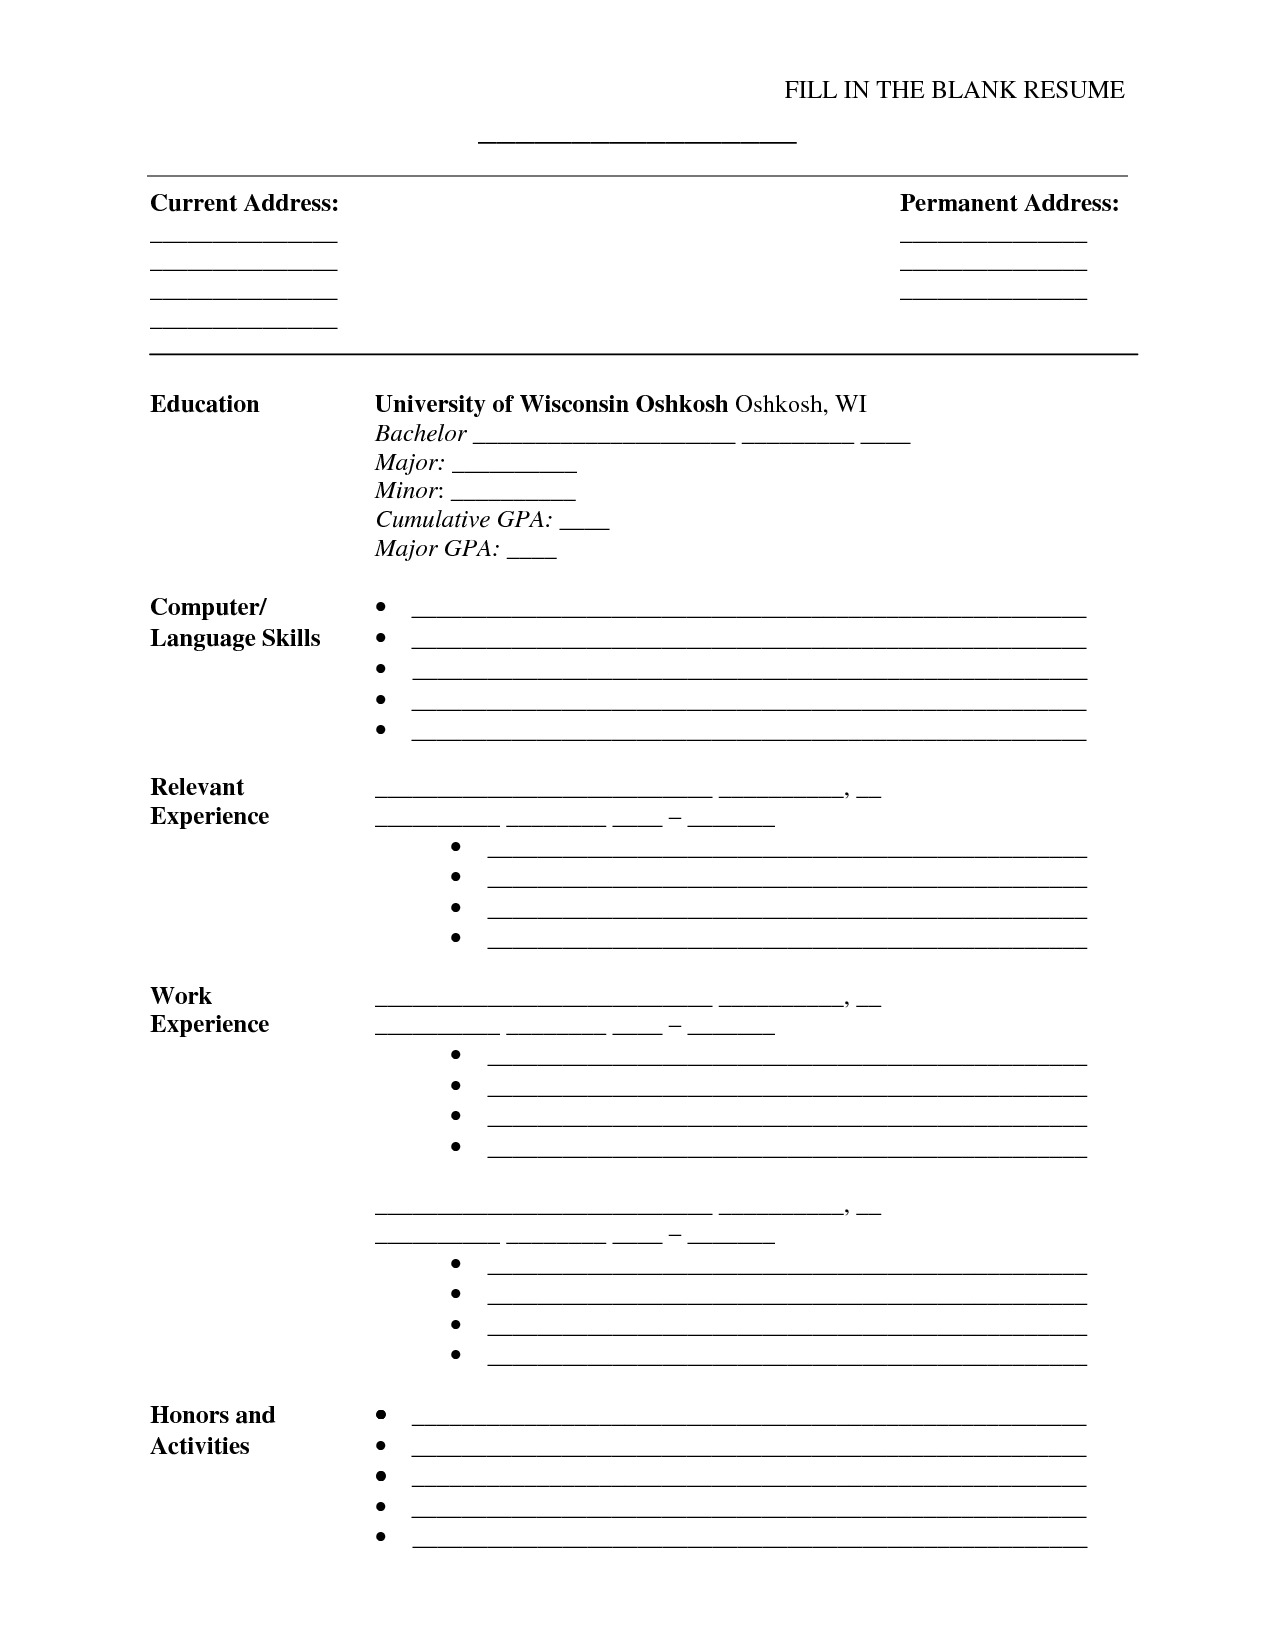 Fill In The Blank Resume Pdf  HttpWwwResumecareerInfoFill